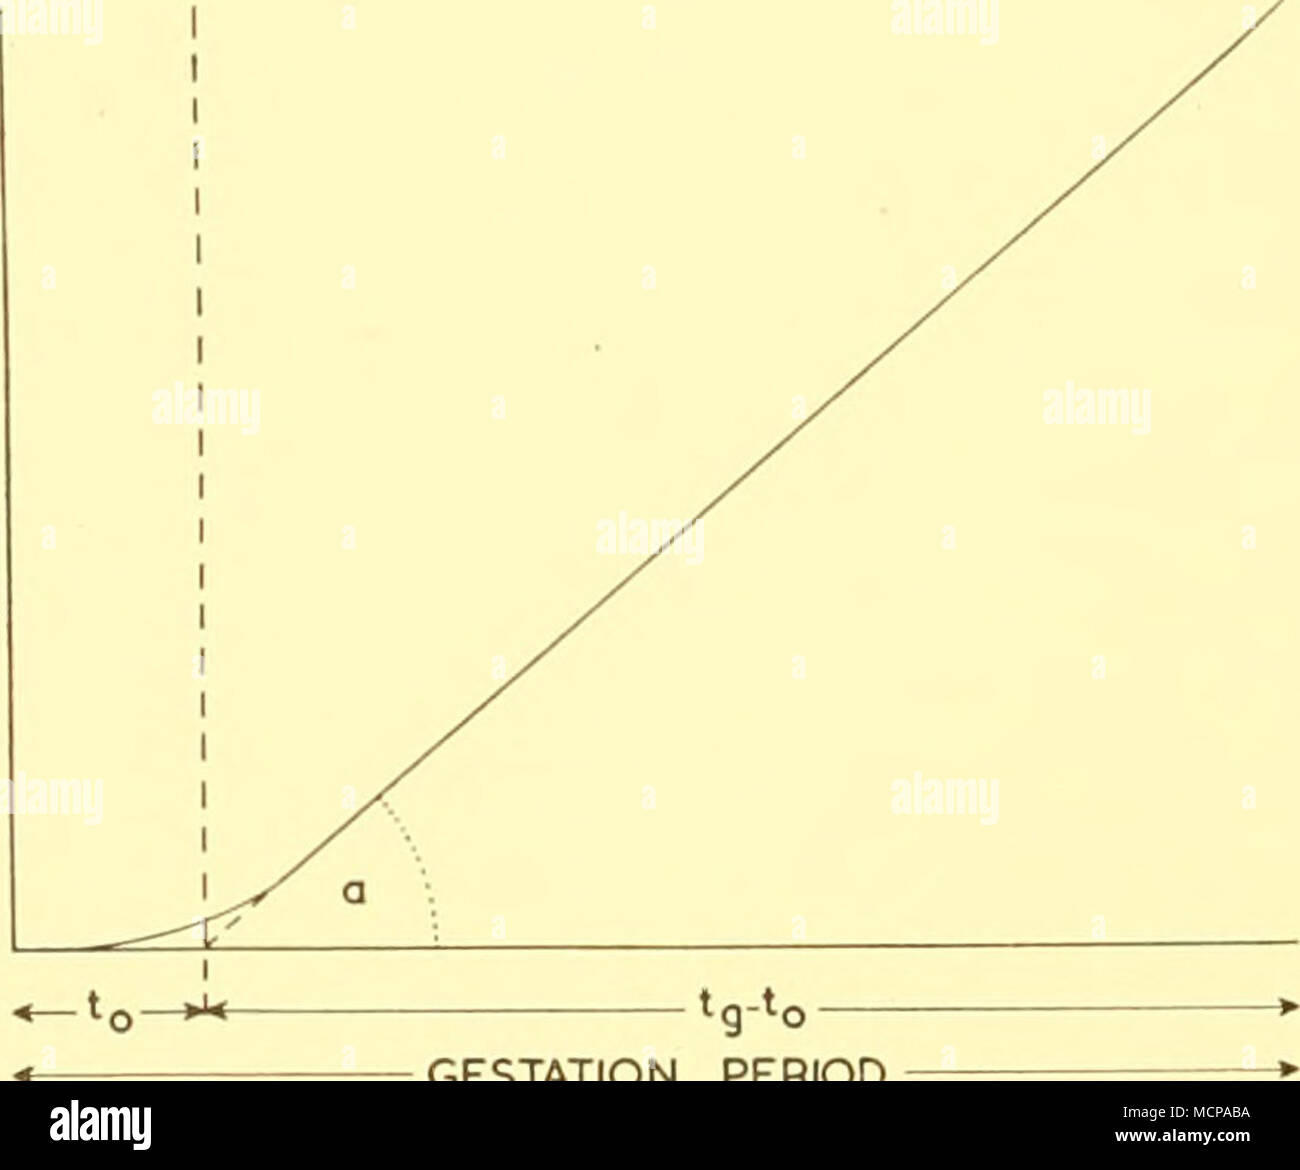 hight resolution of i diagram illustrating relation between foetal weight or length gestation period and a after huggett and widdas 1951 in this respect the work of